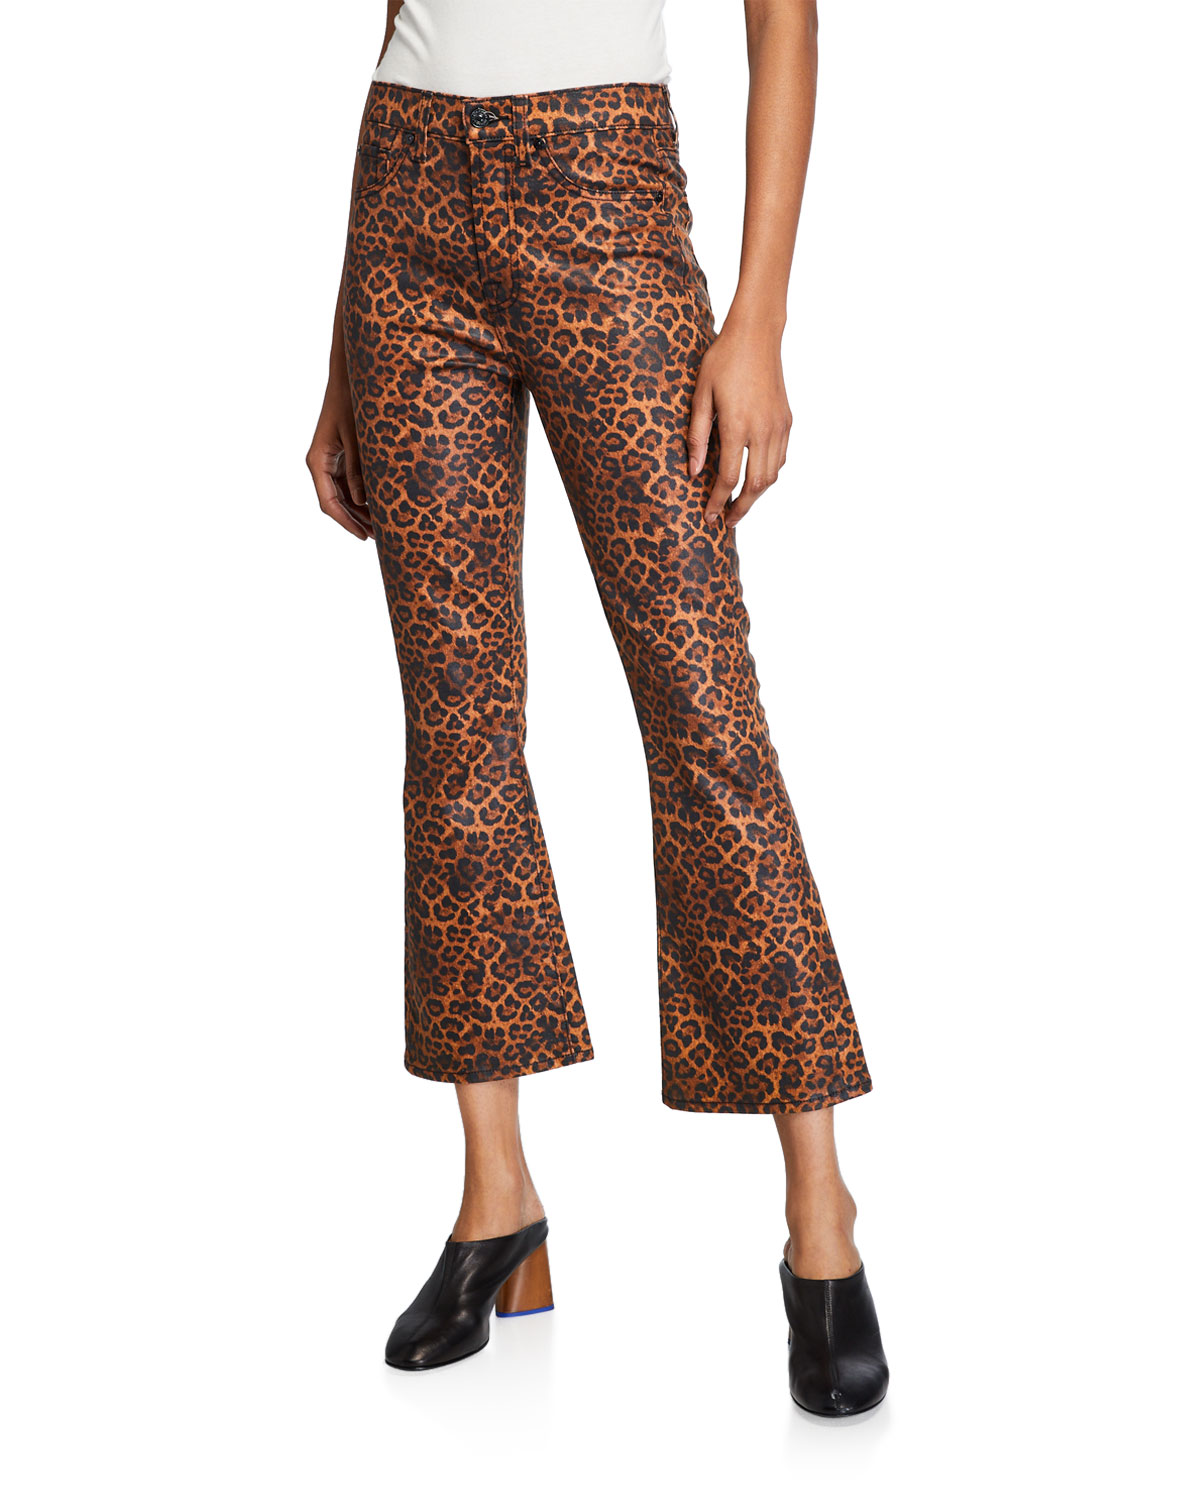 7 For All Mankind Jeans HIGH-WAIST SLIM KICK FLARE JEANS